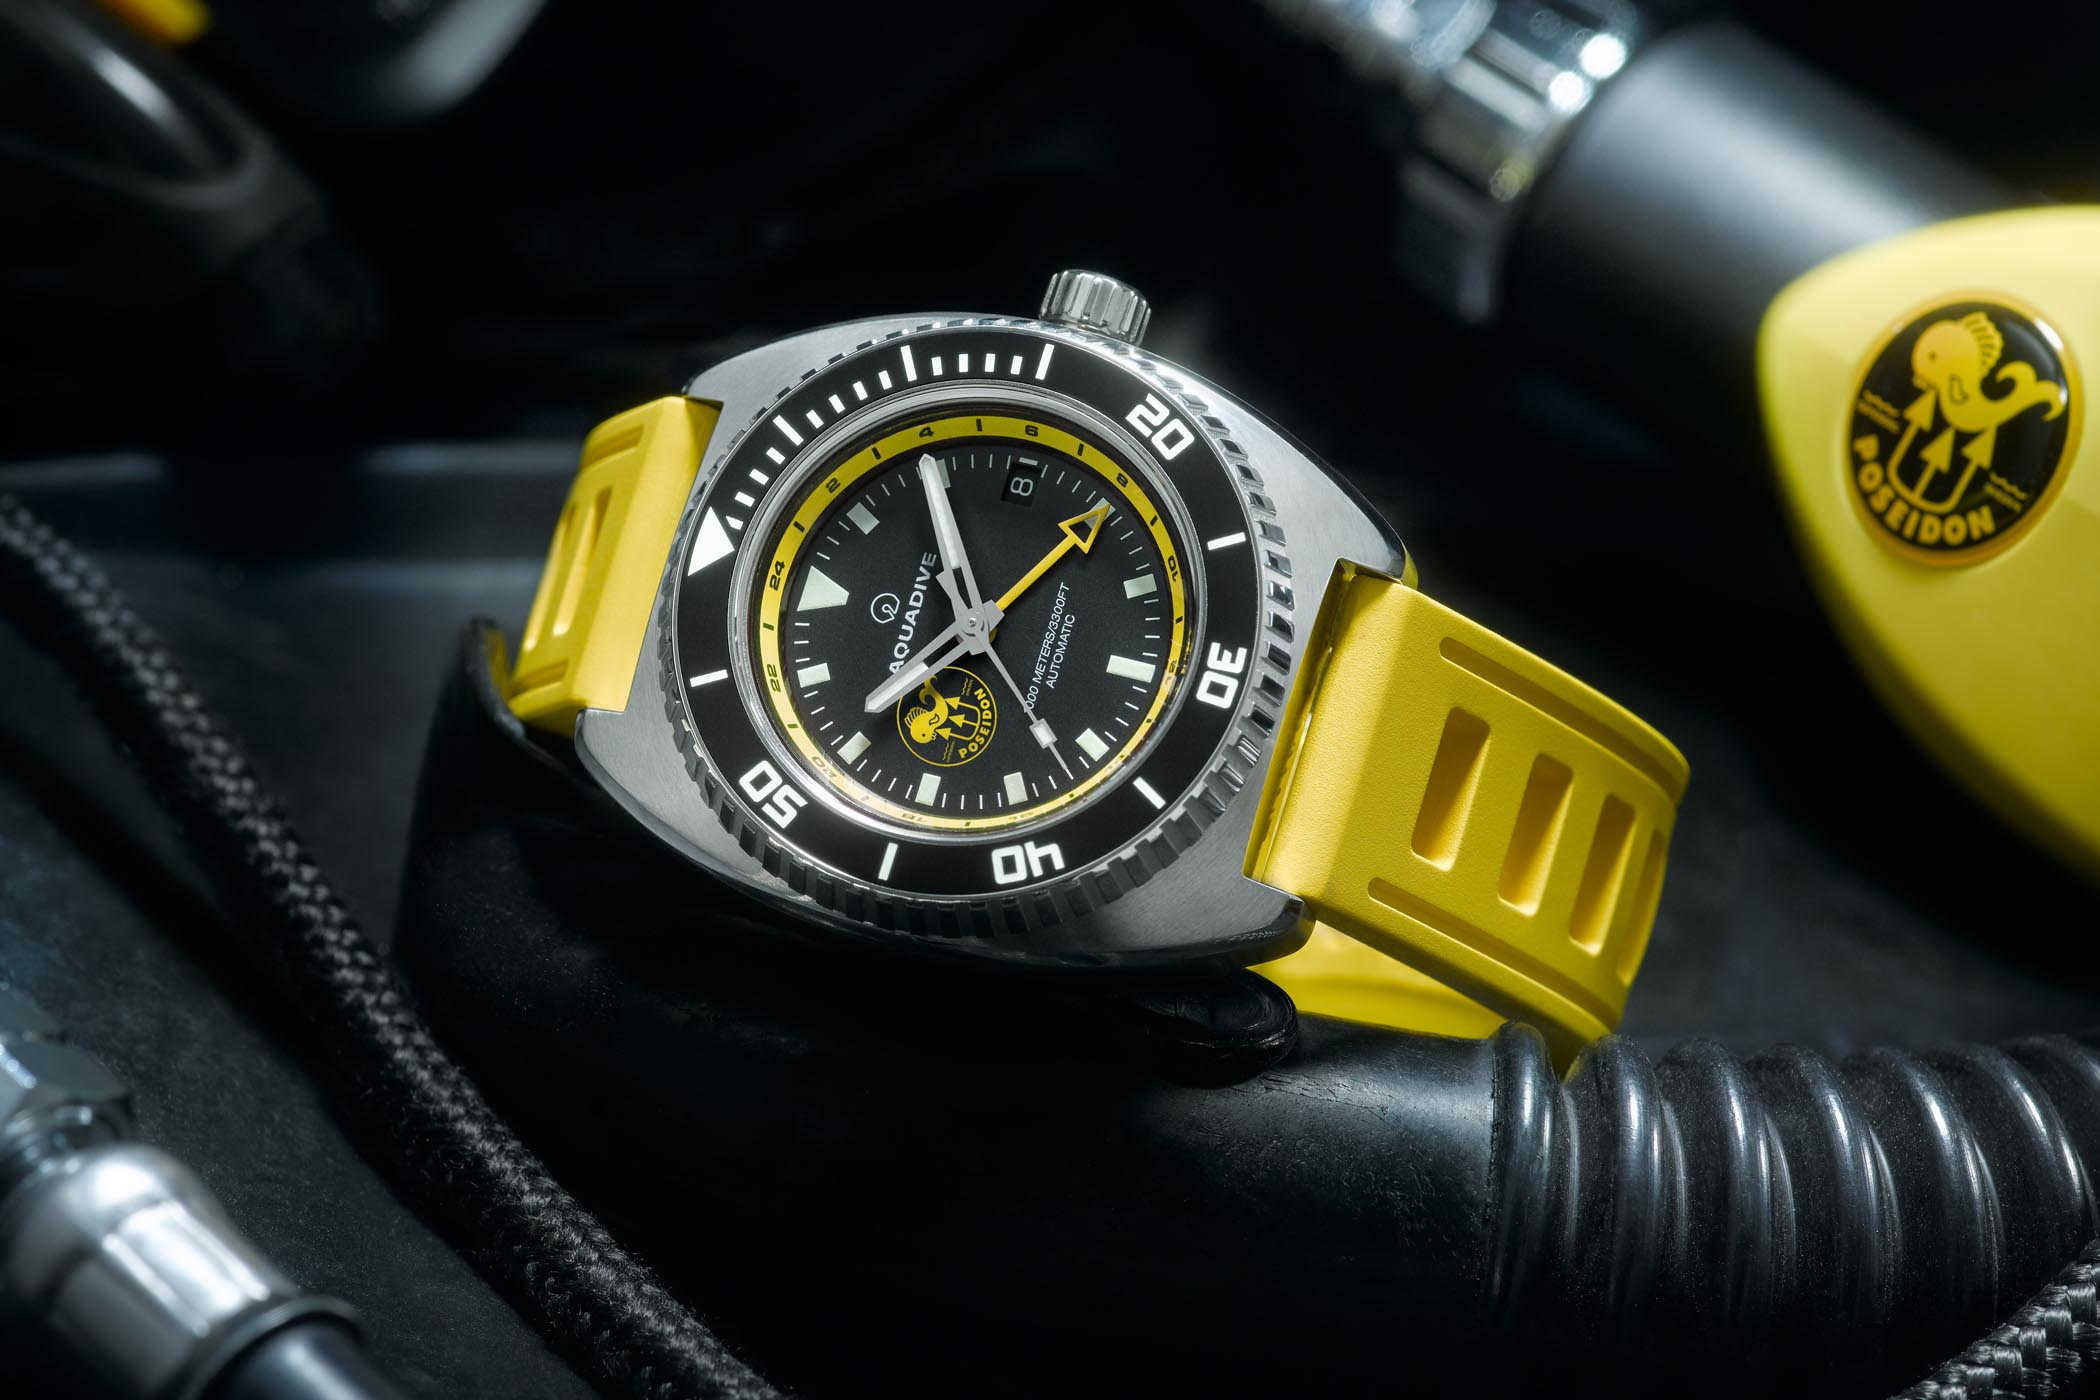 Aquadive Bathyscaphe 100 GMT Poseidon Edition